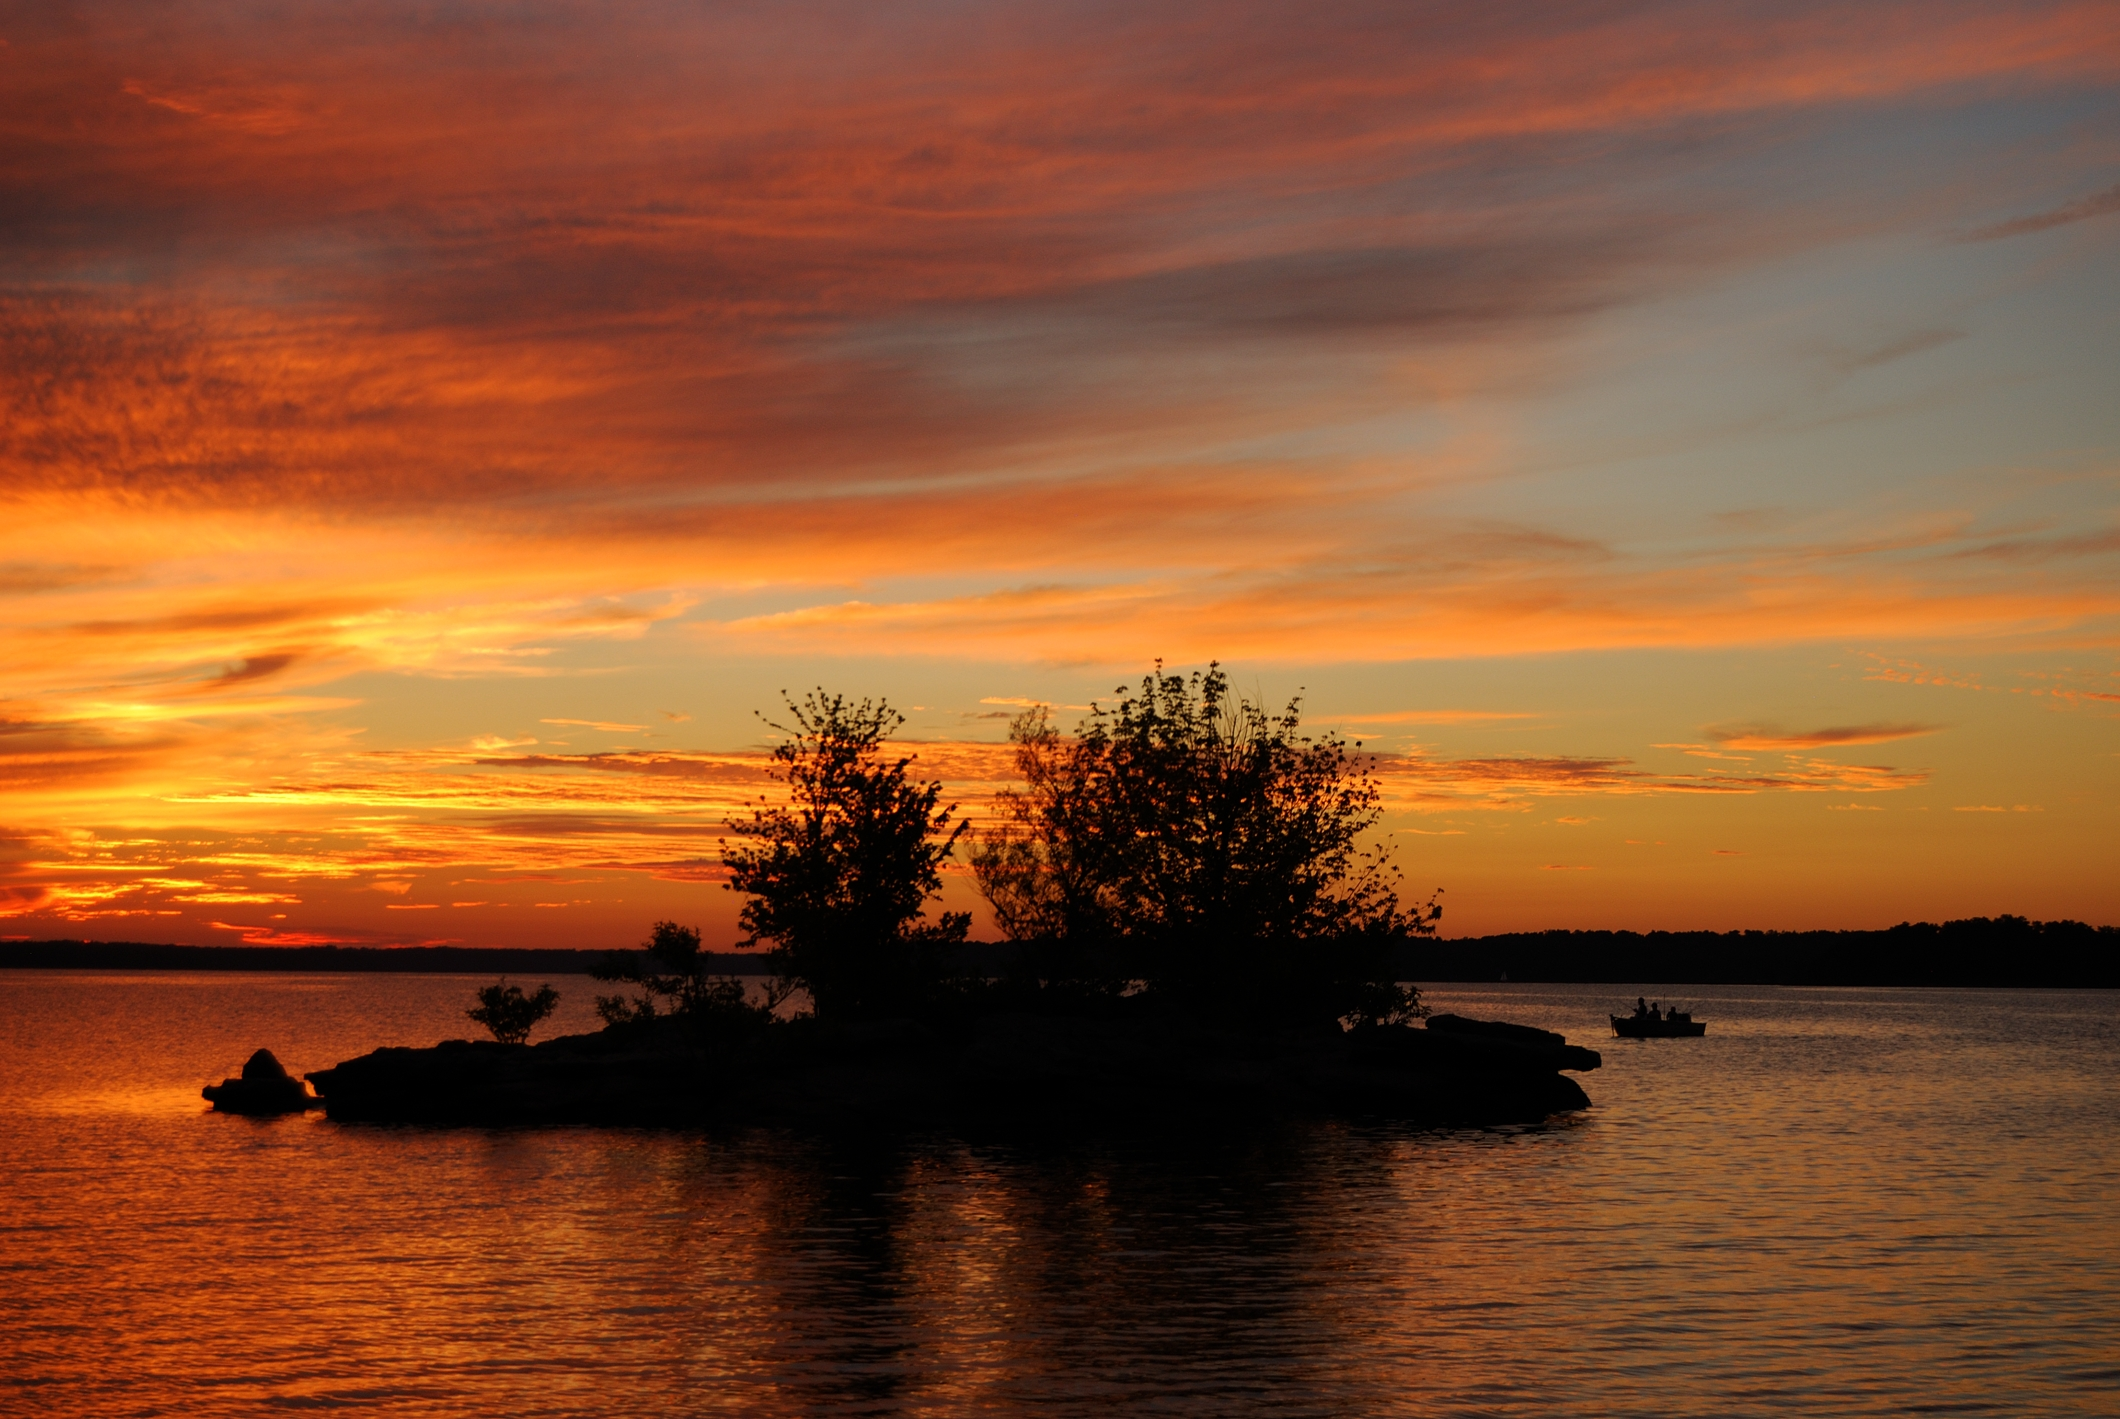 Sunset at Stockton Lake, Missouri. Photograph showing the sunset, and a small island.